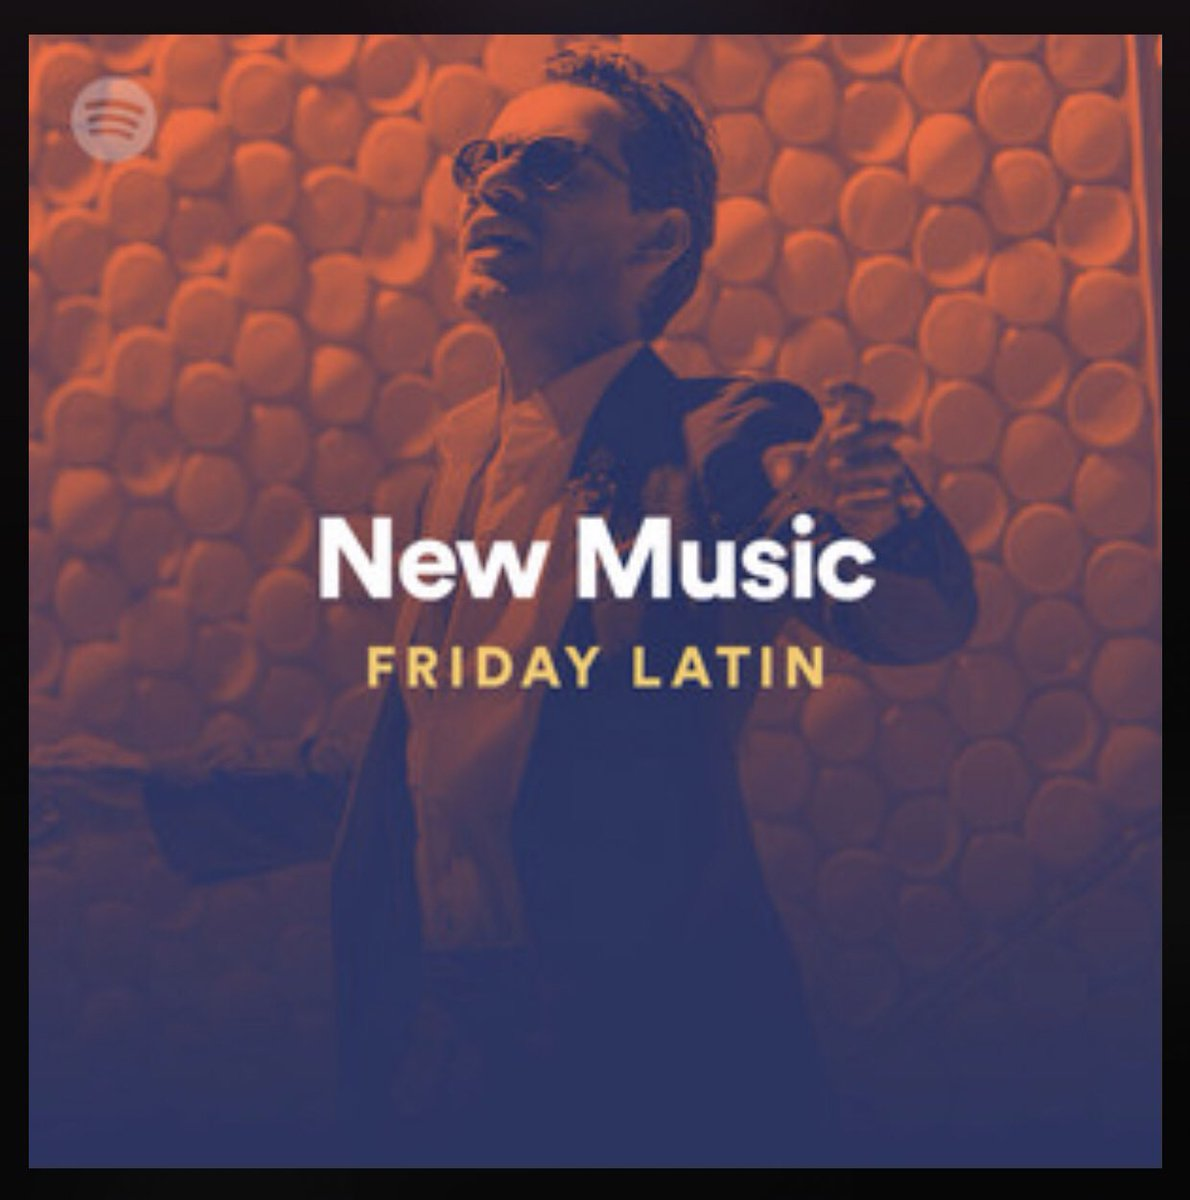 It's time for New Music ???? On @SpotifyLatino  https://t.co/wpJZa6dle0 https://t.co/ehLDcQ5wgt